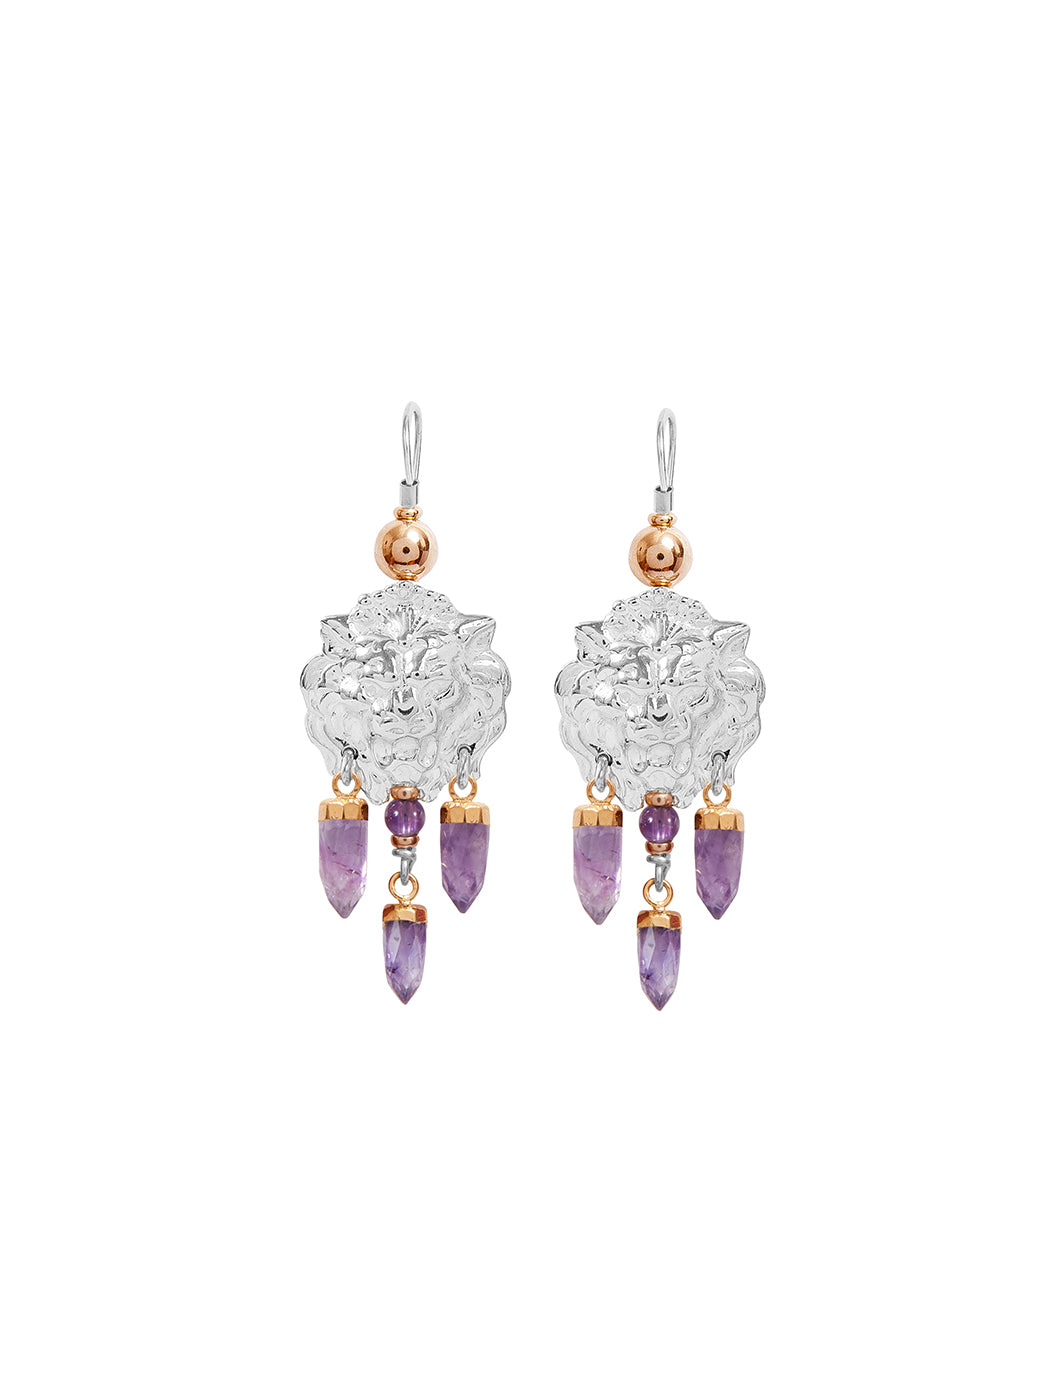 Fiorina Jewellery Taormina Earrings Amethyst